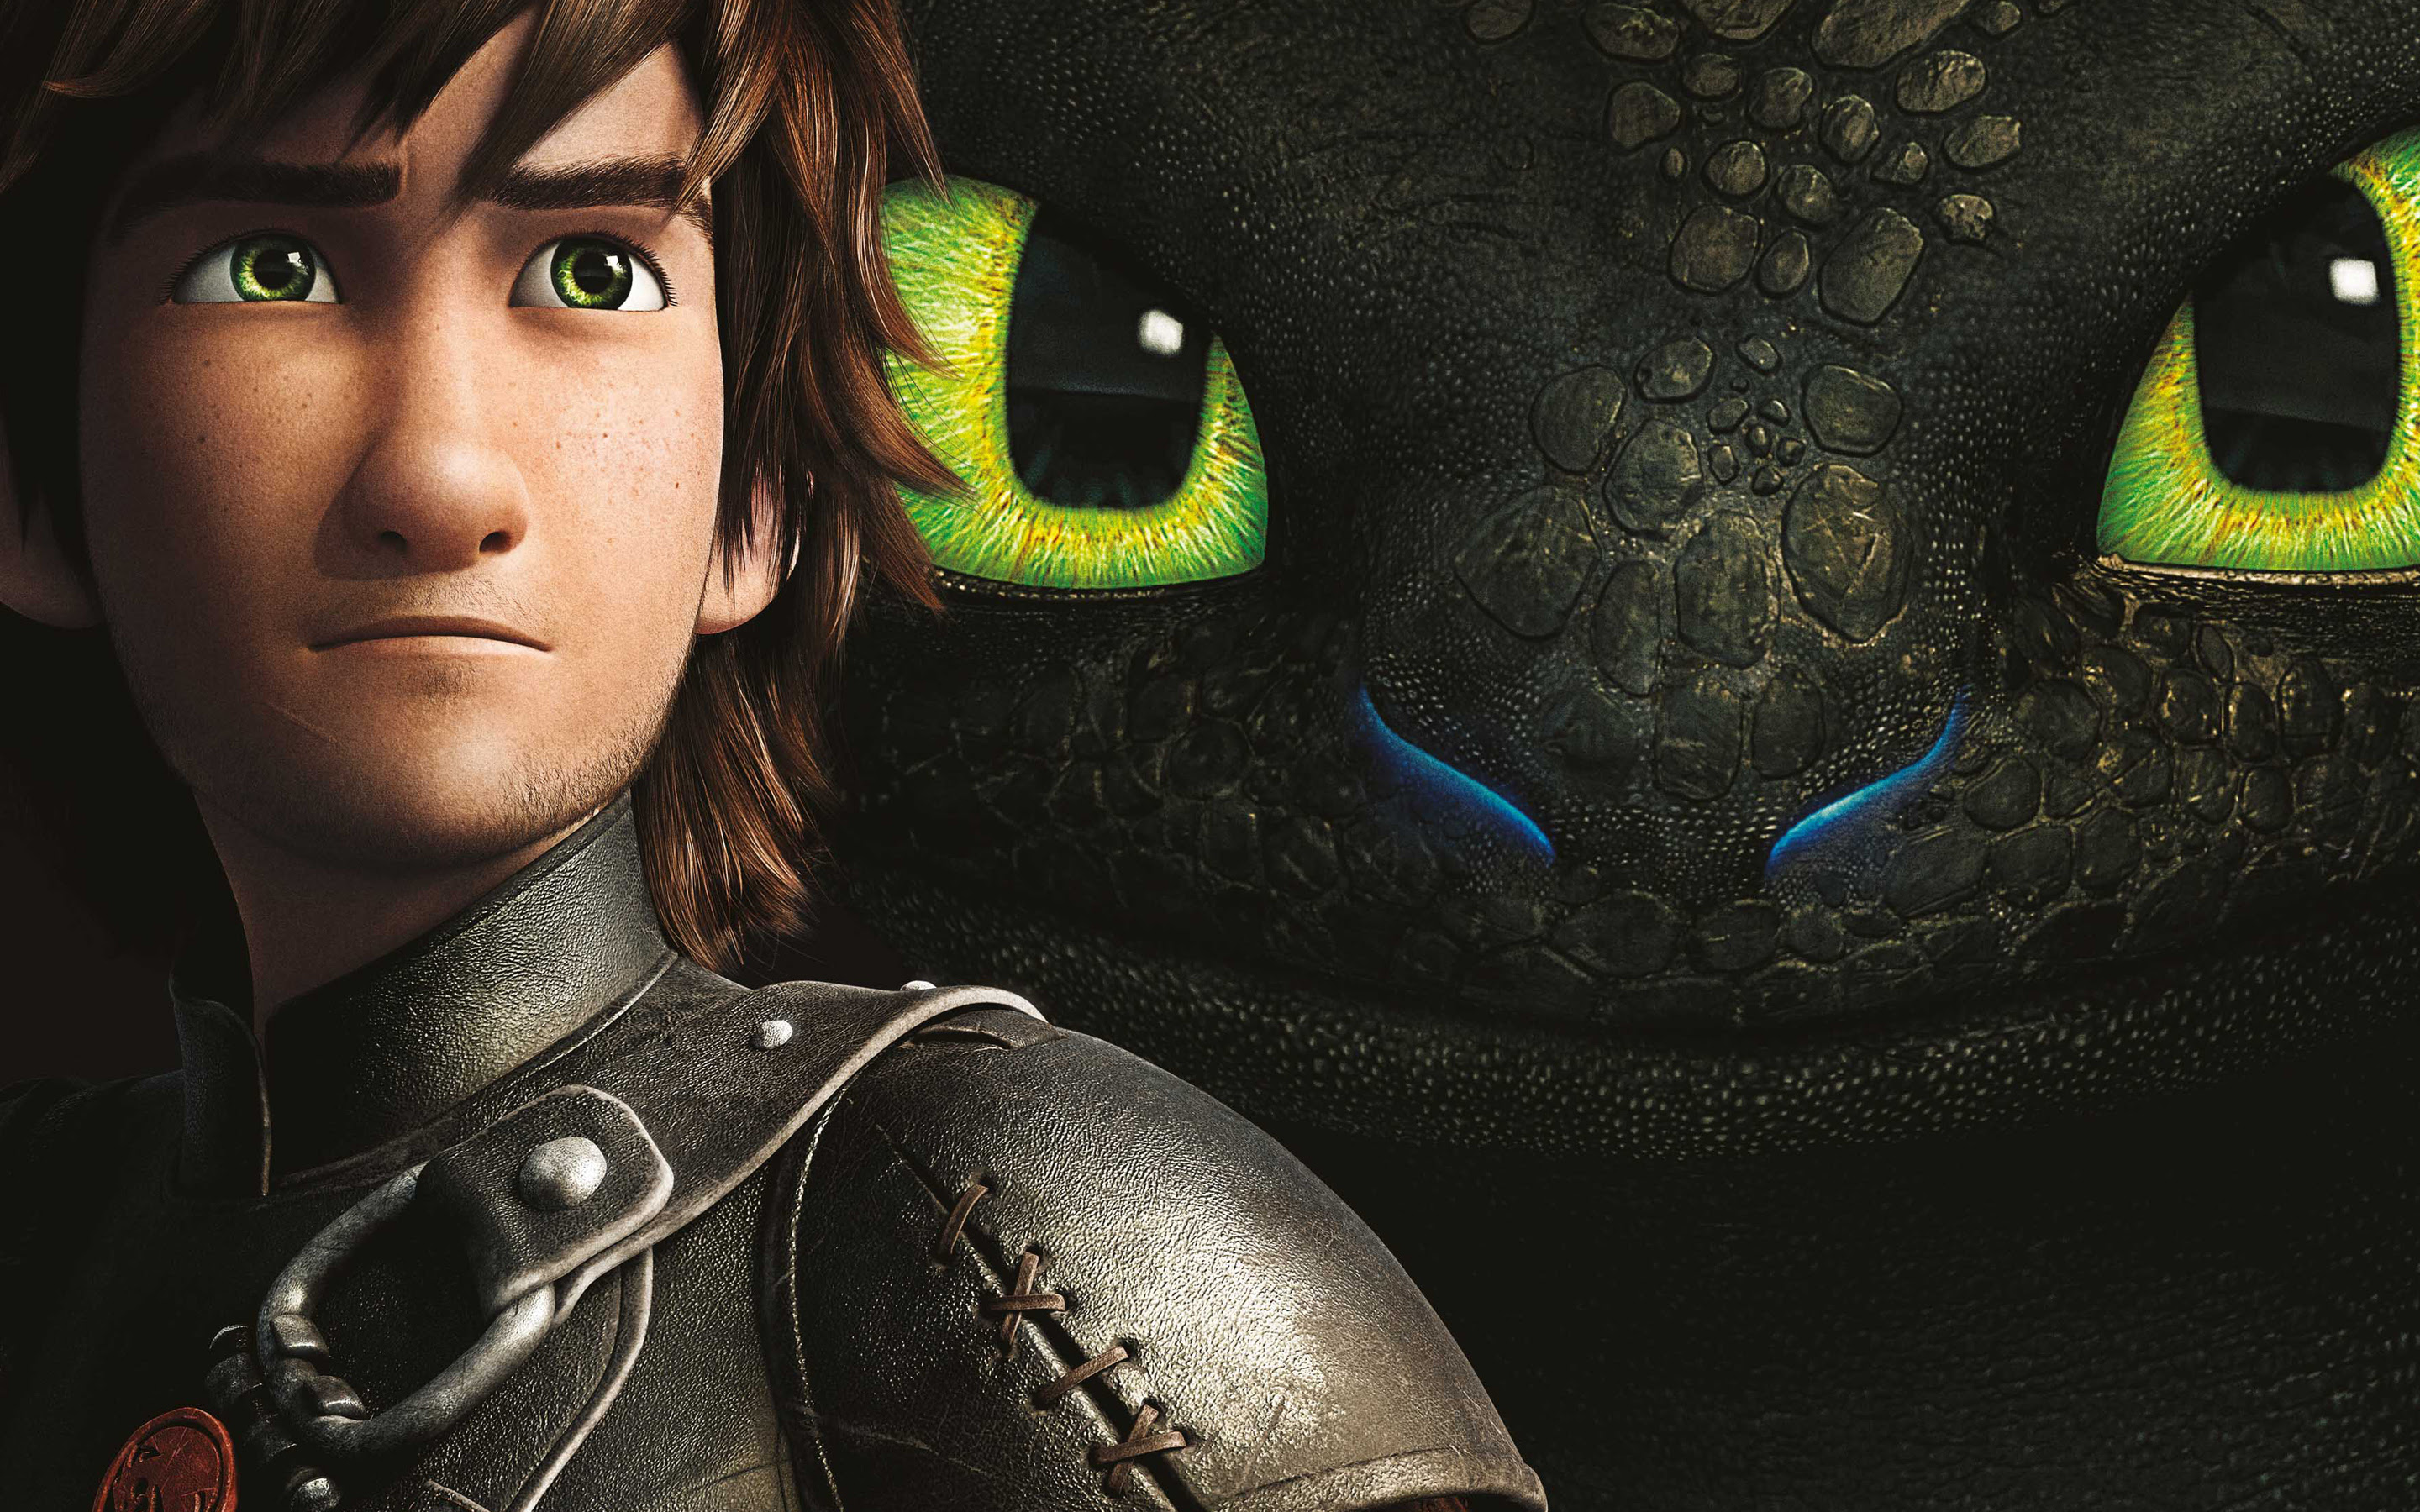 How To Train Your Dragon 2 Wallpapers Wallpapers Hd